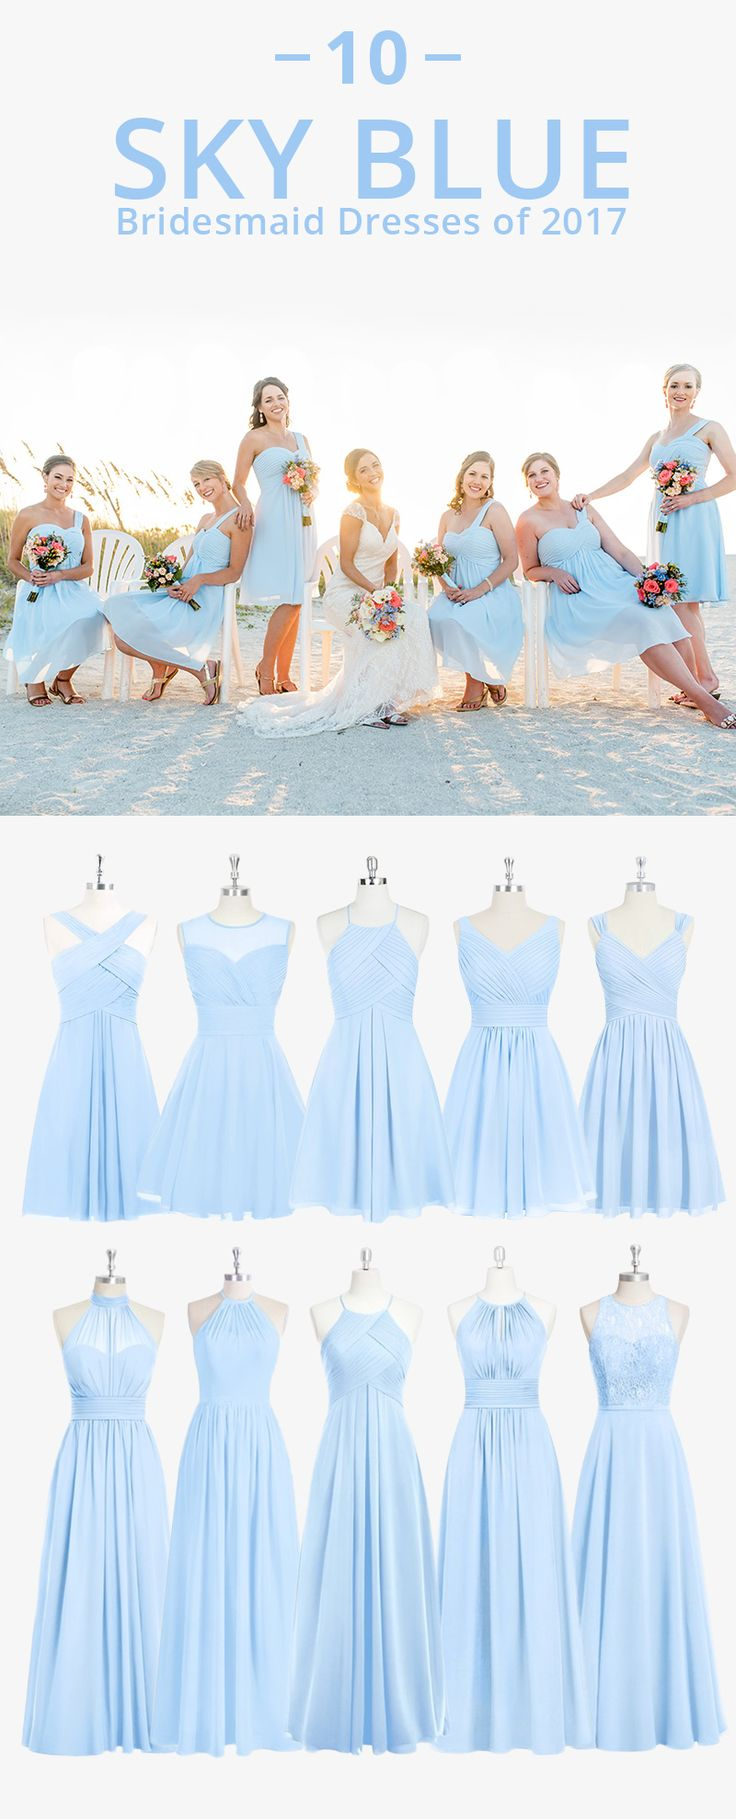 Dress your bridesmaids in this angelic light blue! Available in sizes 0-30 and free custom sizing! Every woman deserves their dream dress, that fits right while still being budget friendly!